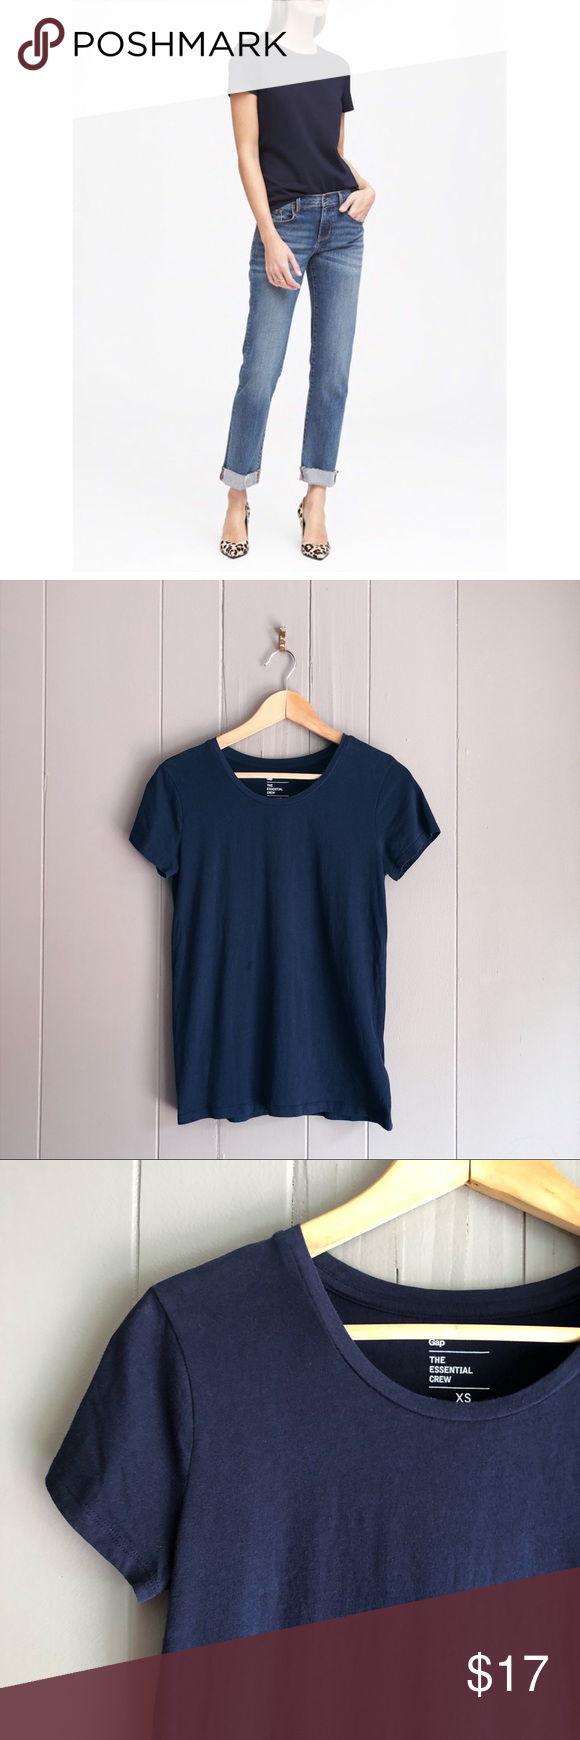 GAP Navy Pima Cotton Essential Crew Neck Tee Soft and lightweight. Perfect for the summer! Excellent...